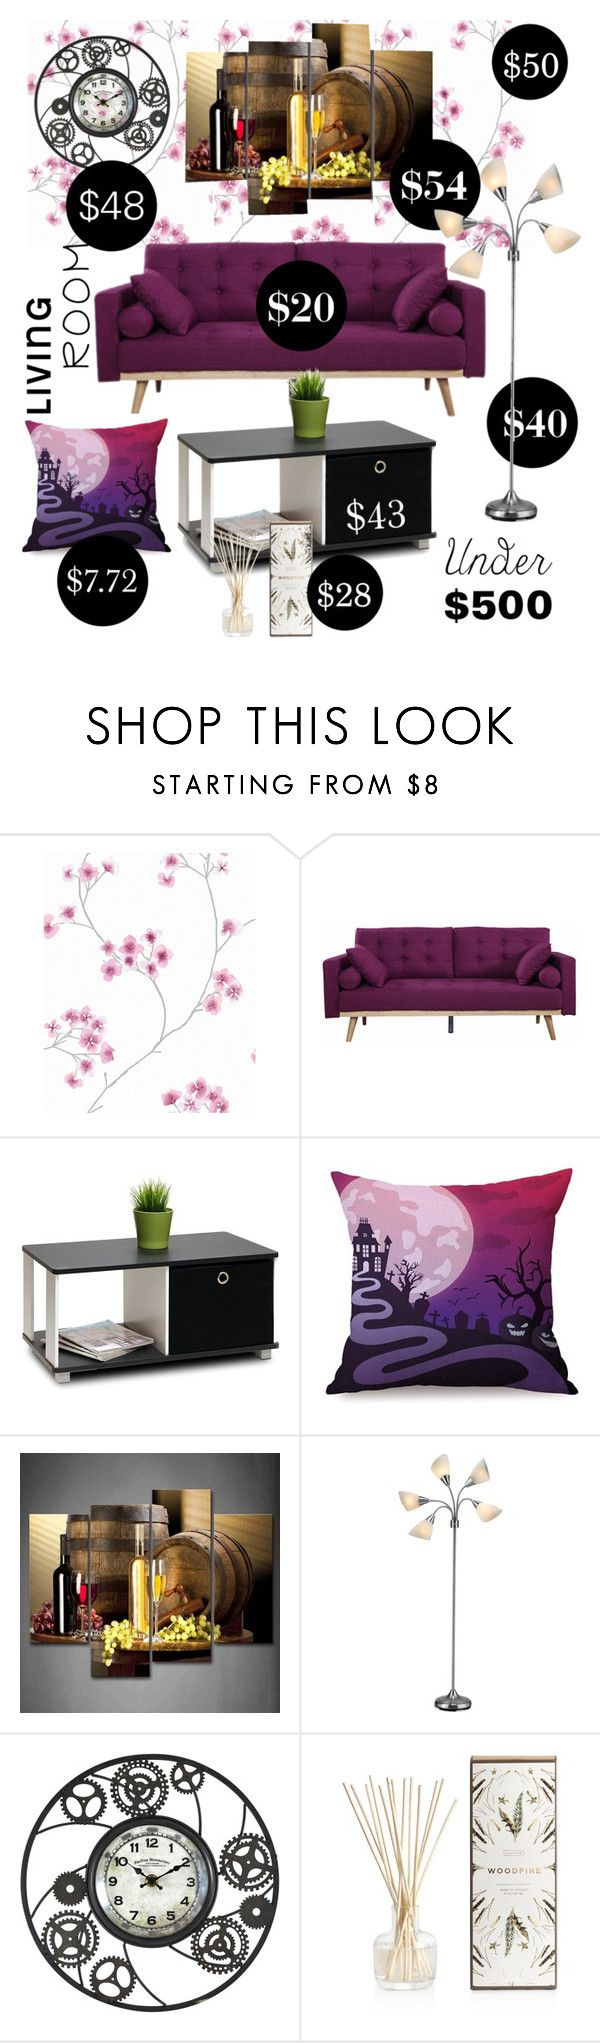 """""""Plum Living Room"""" by val-lav ❤ liked on Polyvore featuring interior, interiors, interior design, home, home decor, interior decorating, Furinno, Adesso, Illume and living room"""